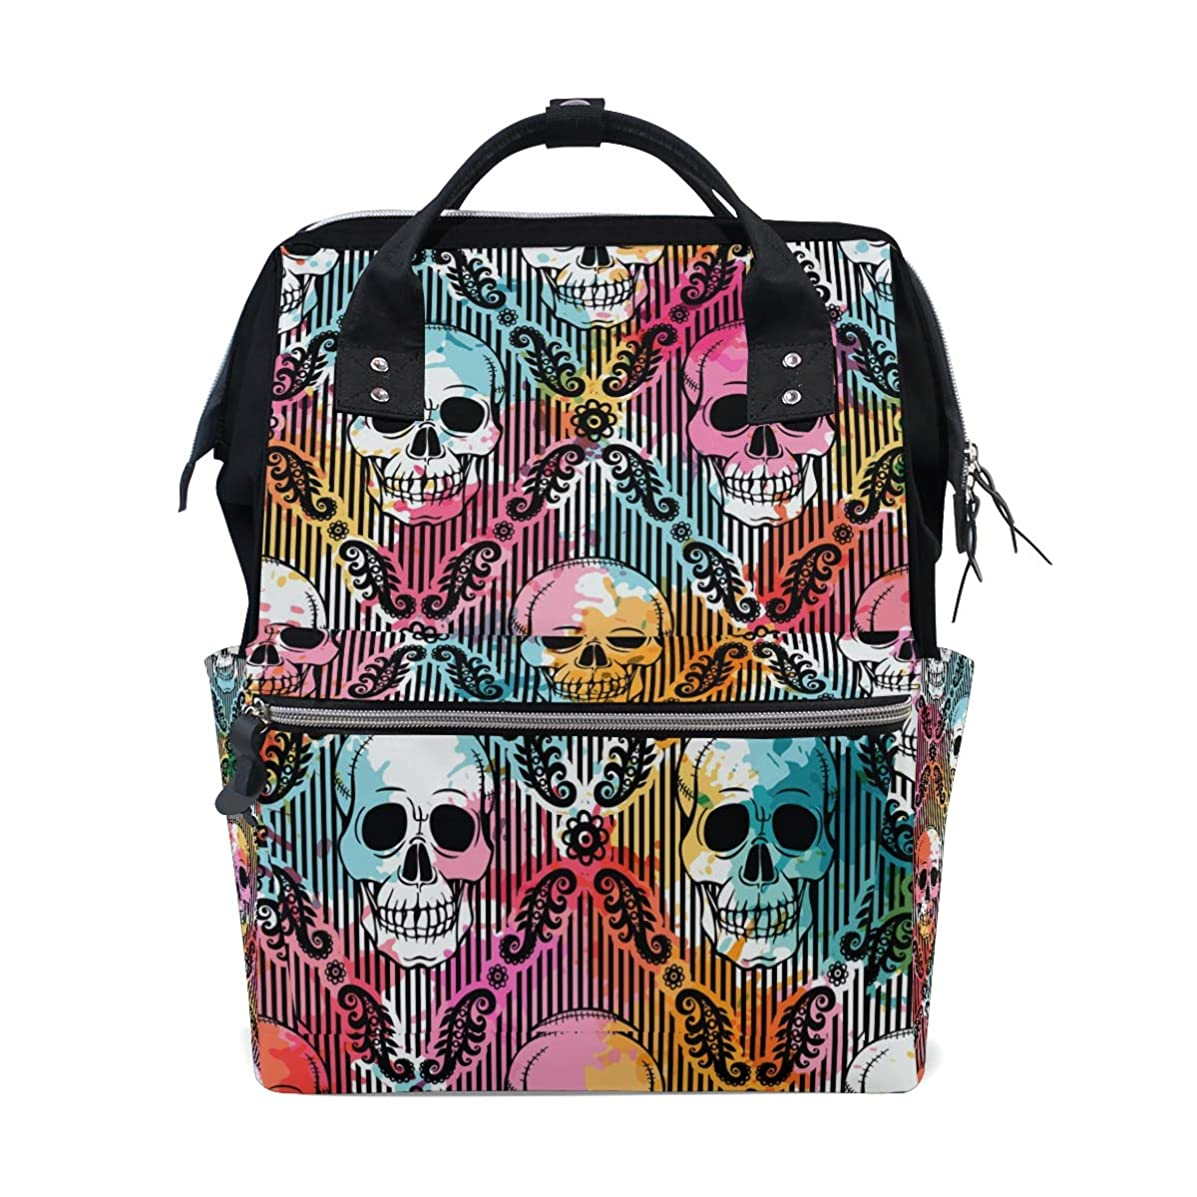 Punk Gothic Skull Head School Backpack Large Capacity Mummy Bags Laptop Handbag Casual Travel Rucksack Satchel For Women Men Adult Teen Children